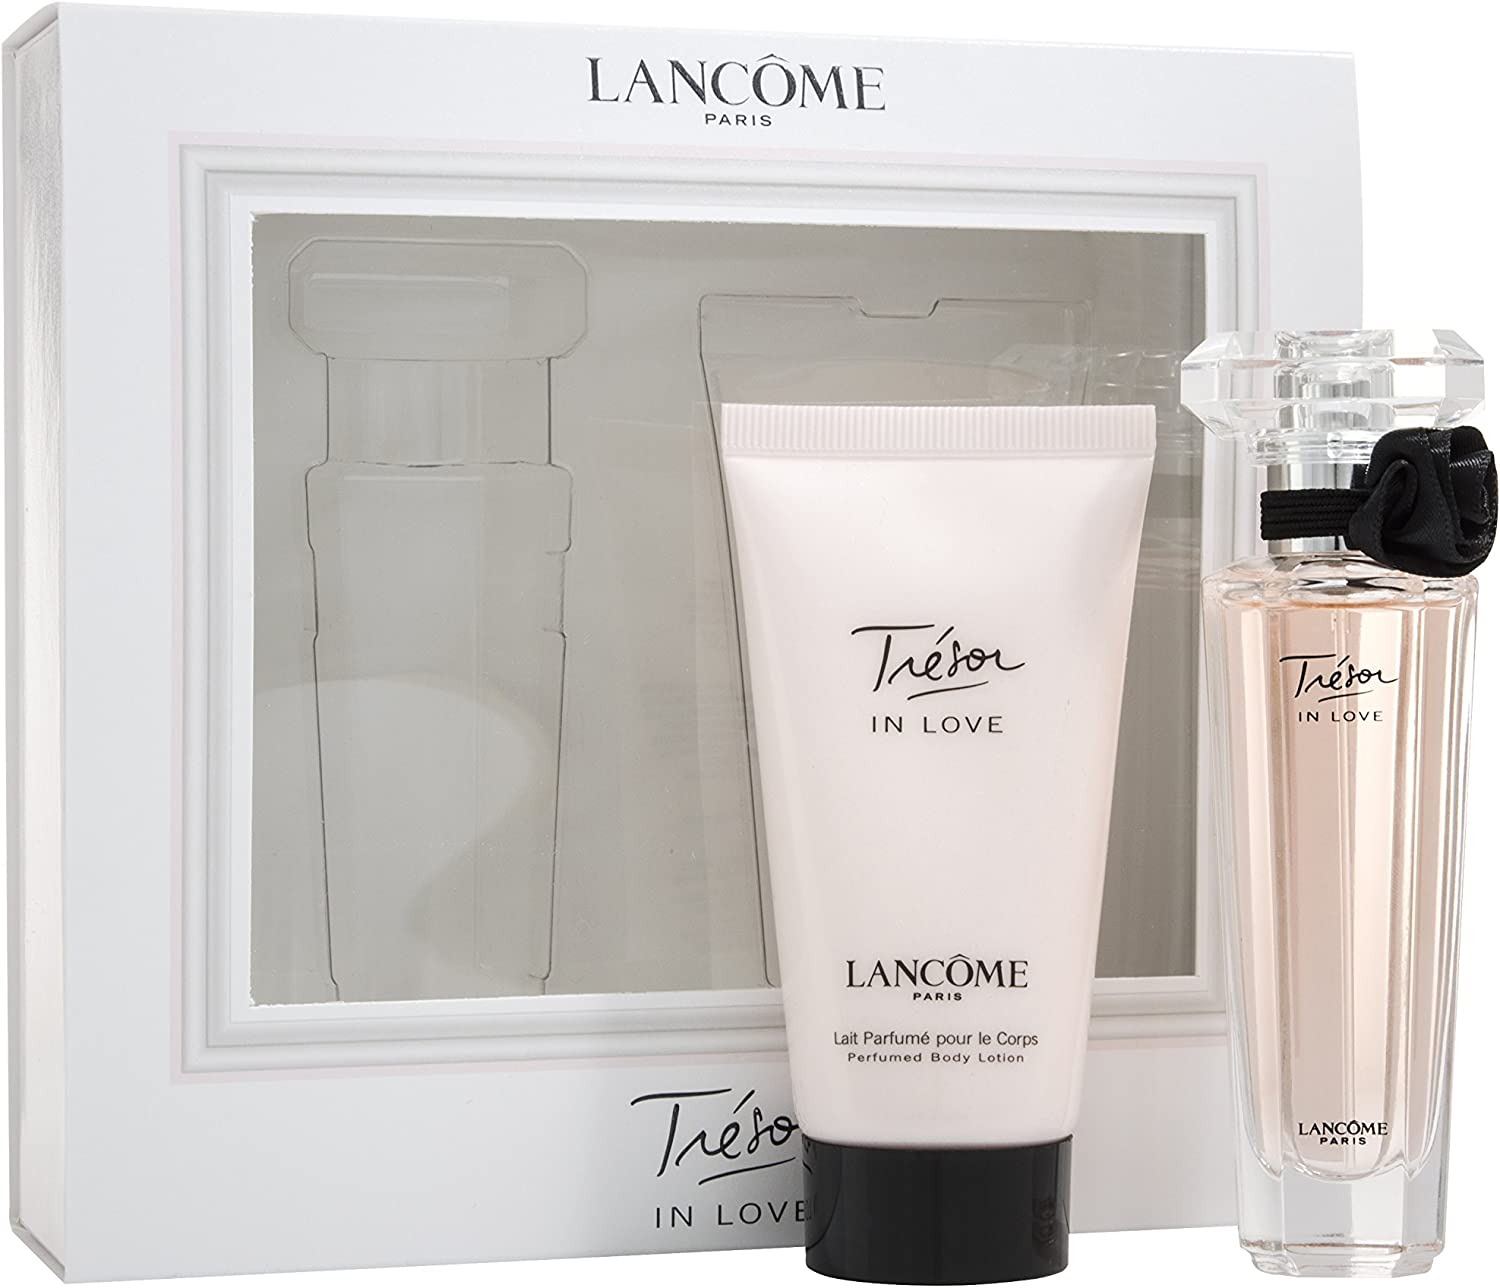 Lancôme Tresor In Love estuche con Eau de Parfum 30 ml/Bodylotion 50 ml: Amazon.es: Belleza